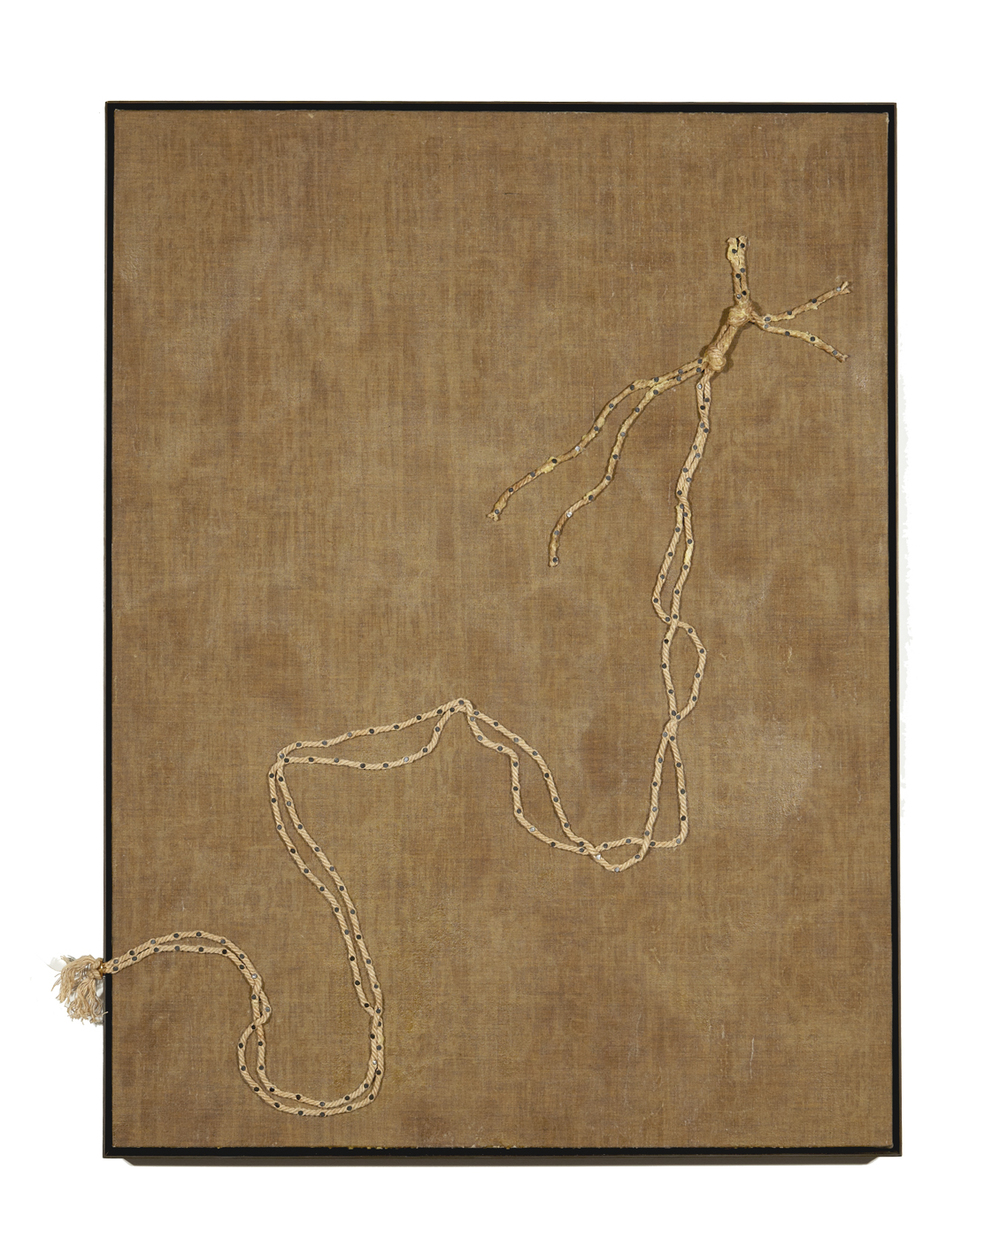 Nick Theobald. I know one day you will set me free, 2014, beeswax, linen, wood, jute rope, steel nails, steel and solid 24k gold, 124 cm x 94 cm